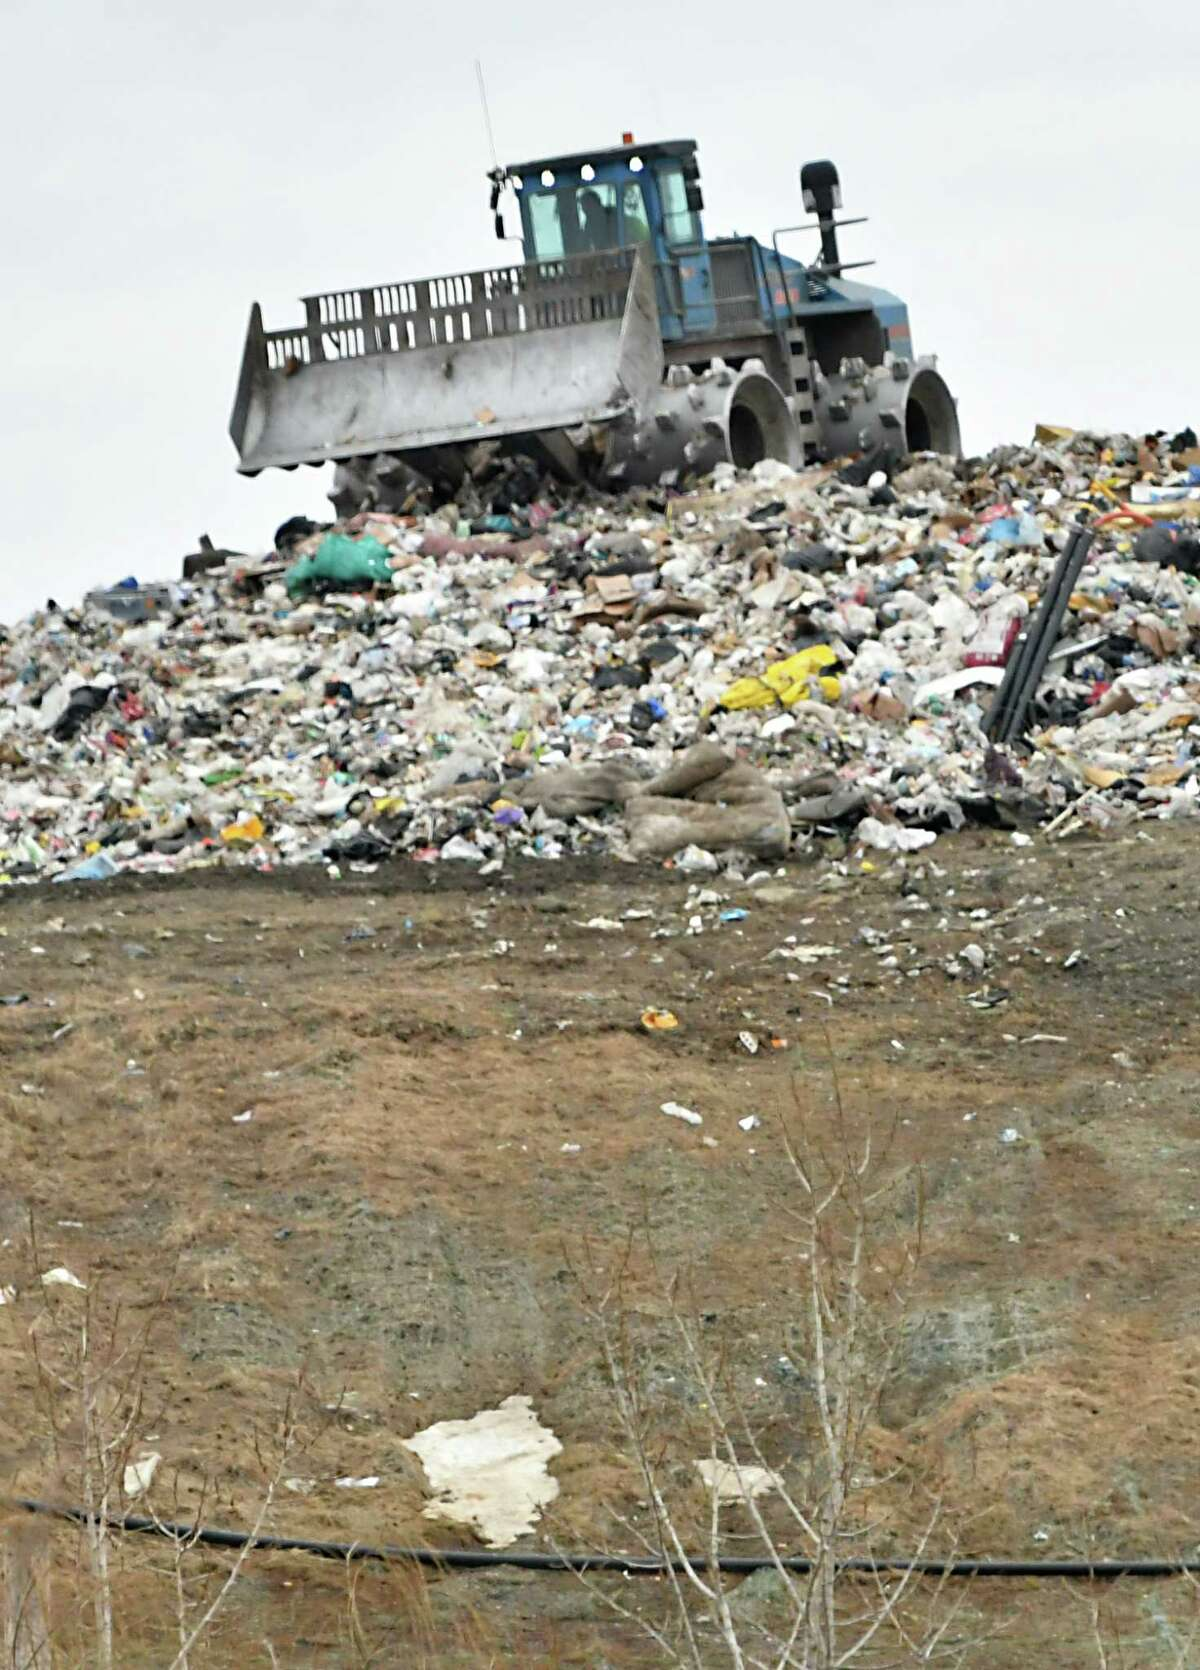 A tractor is seen moving garbage at the Colonie Landfill on Wednesday, Feb. 6, 2019 in Colonie, N.Y. (Lori Van Buren/Times Union)